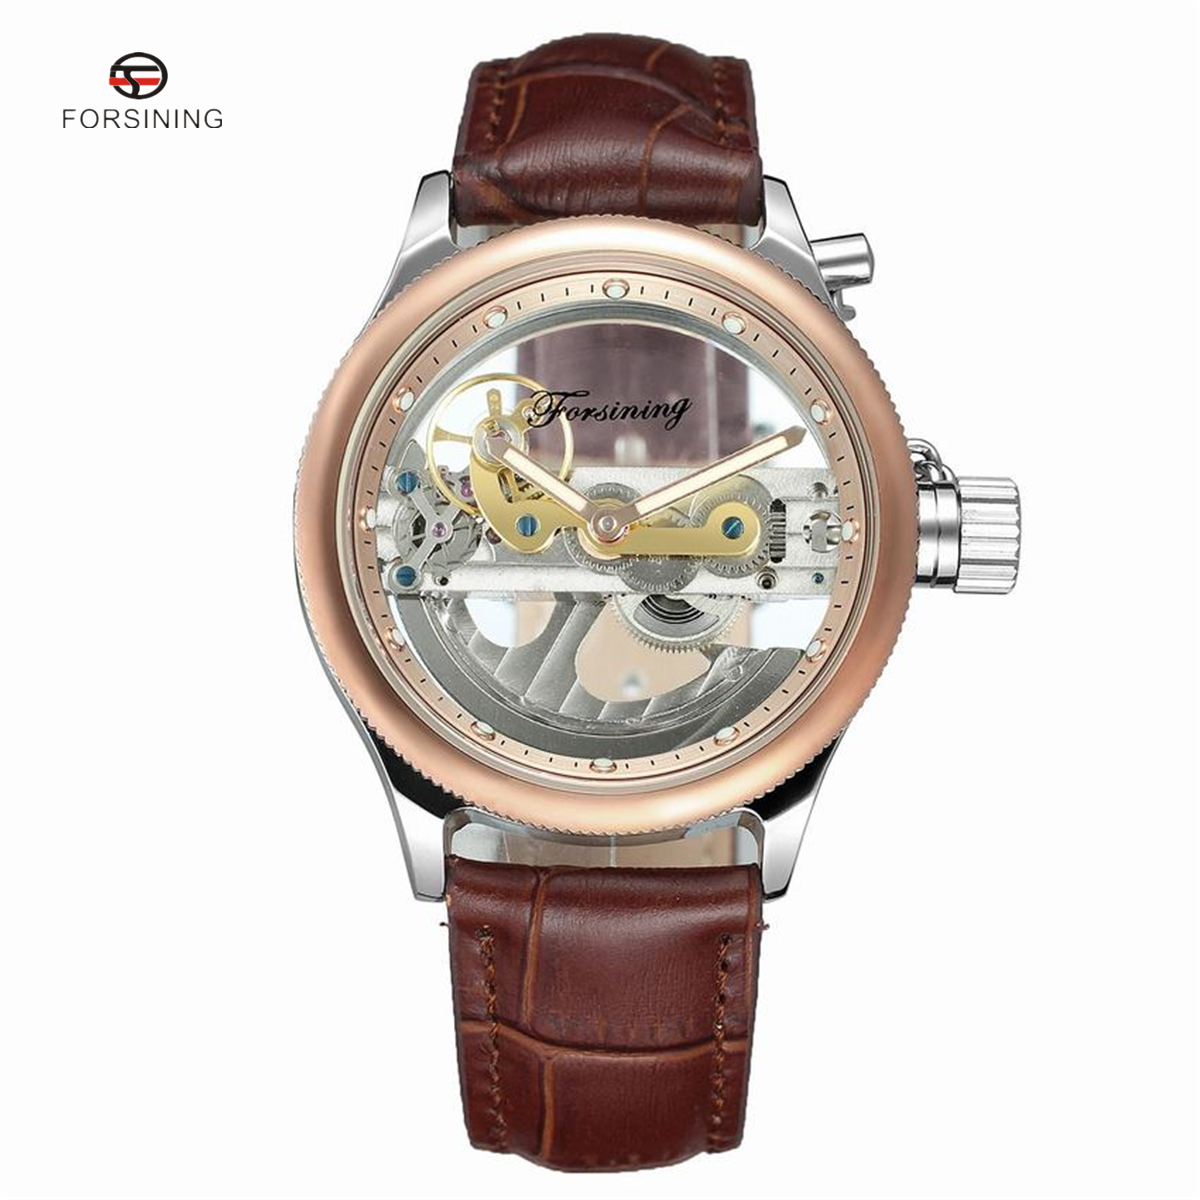 FORSINING Rose Gold Hollow Automatic Mechanical Watches Men Luxury Leather Strap Casual Vintage Skeleton Watch Clock new fashion luxury brand forsining rose gold men watch automatic mechanical watches hollow men tourbillon mechanical watch gift